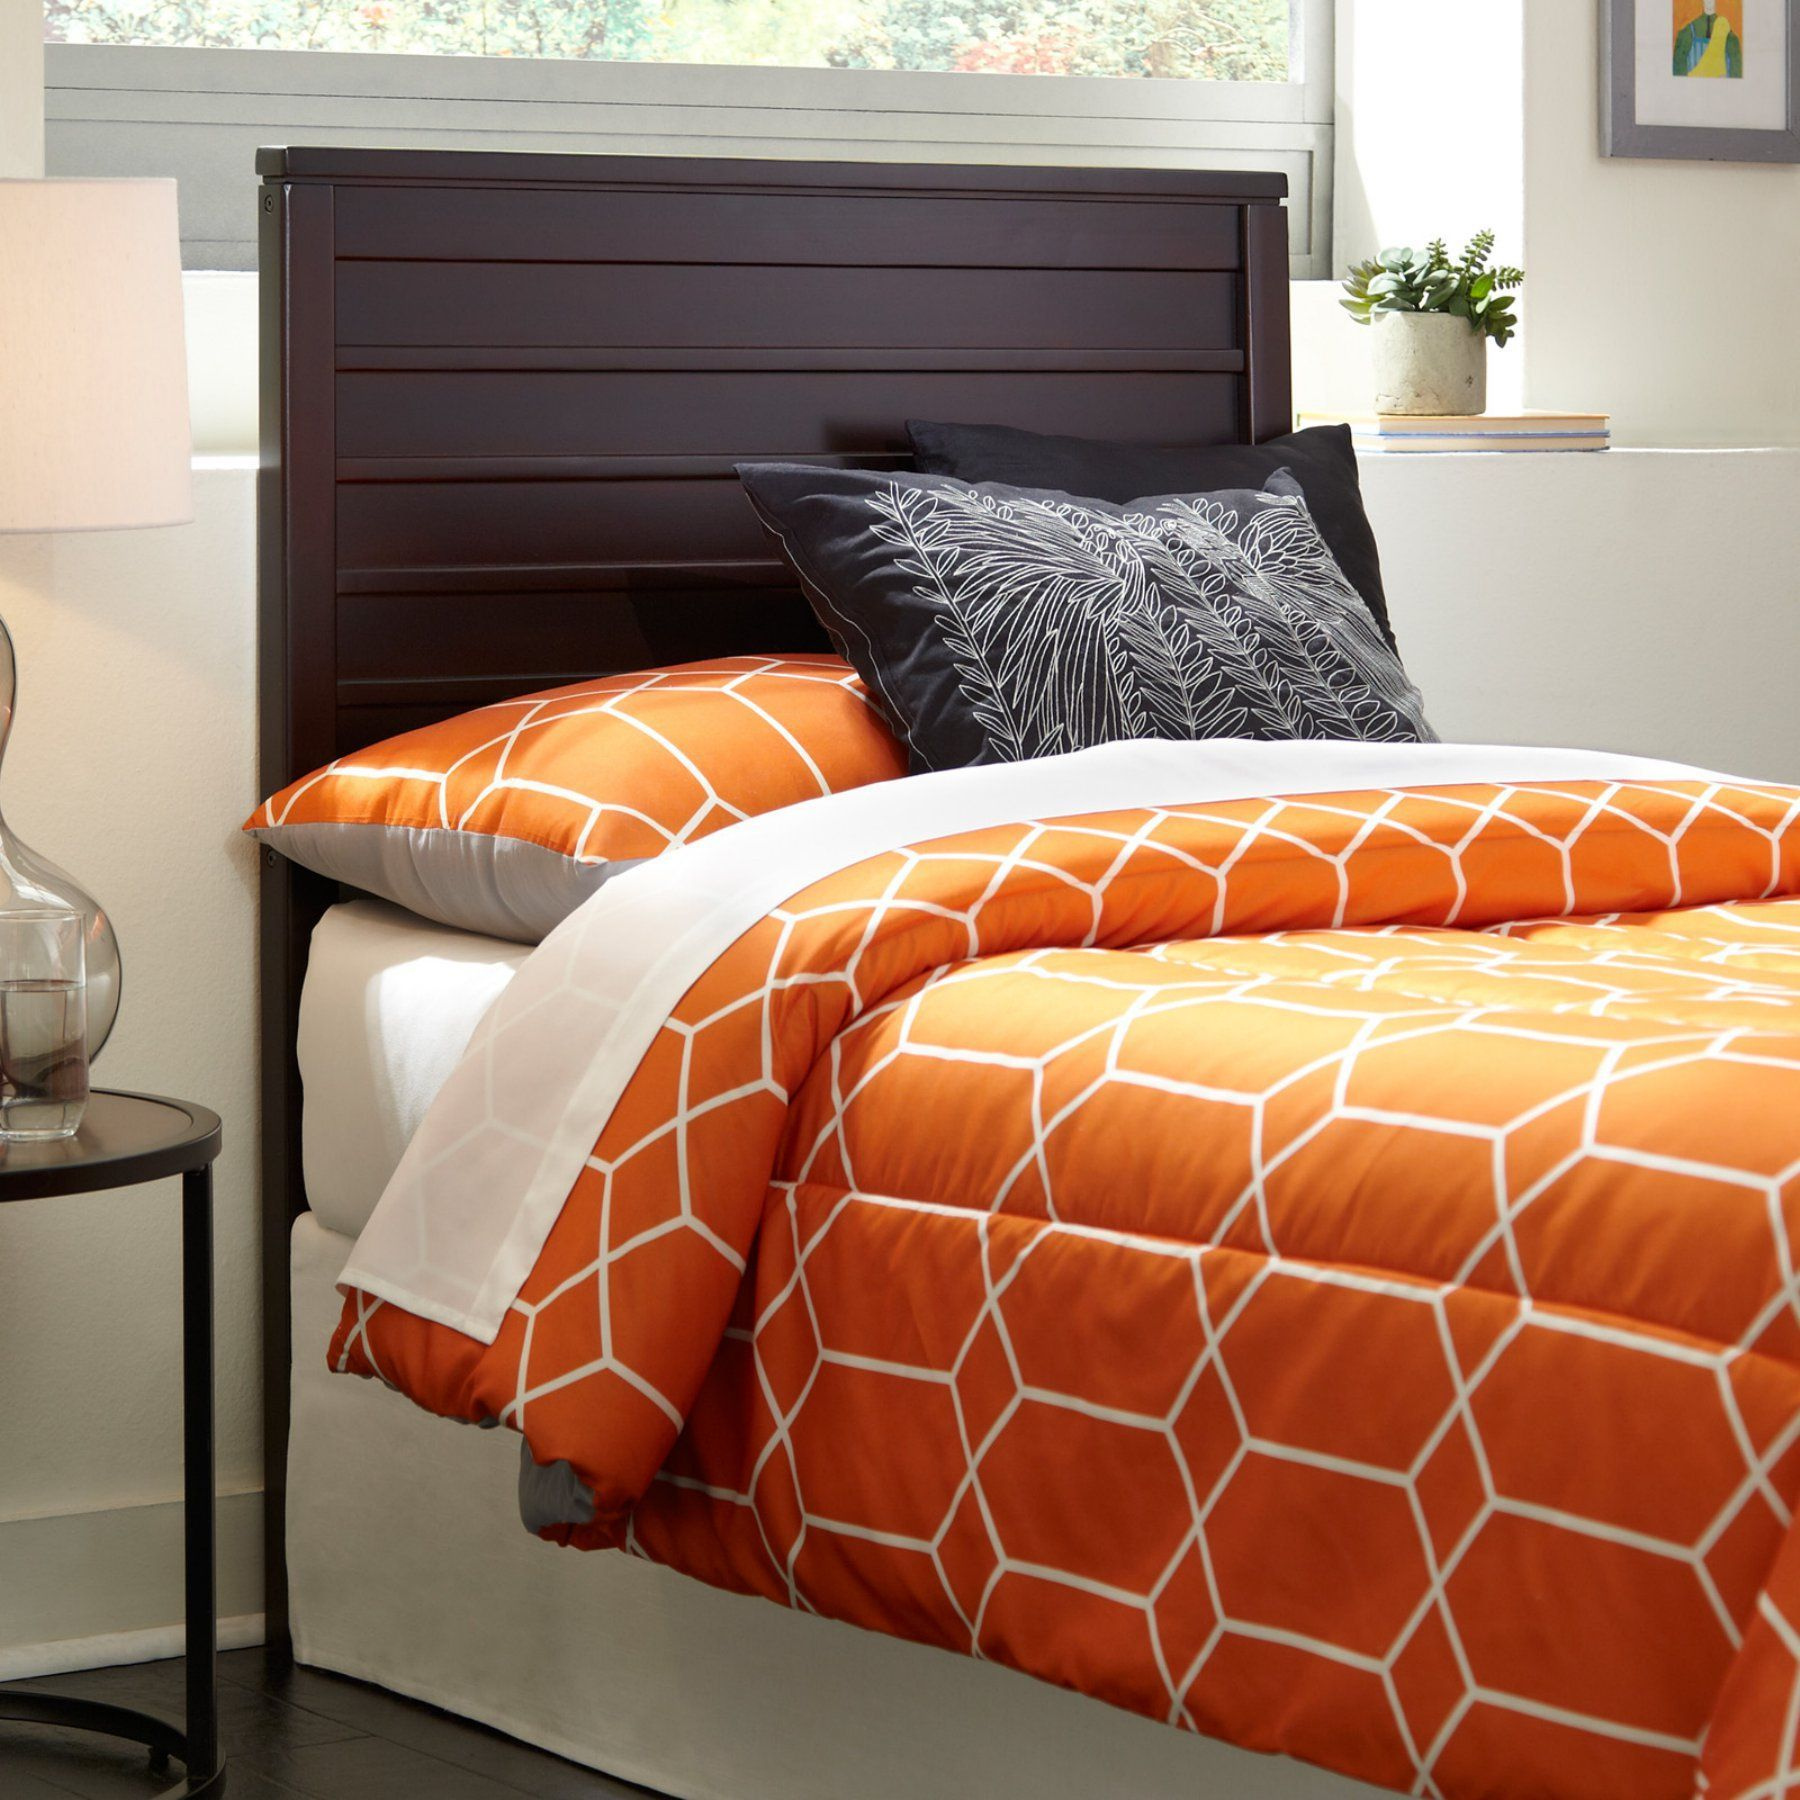 Fashion Bed Group Uptown Headboard 51P033 Bed styling